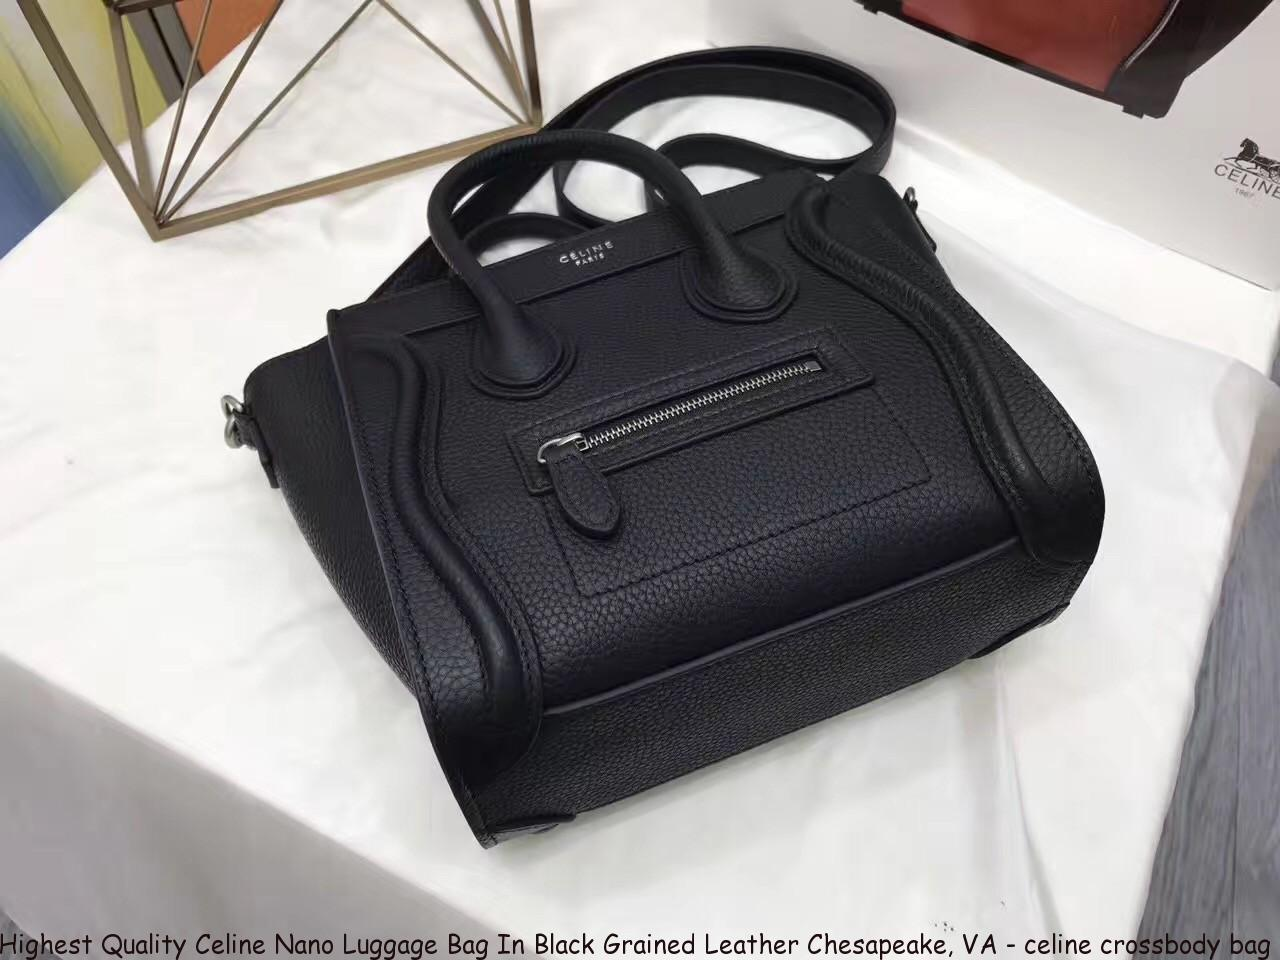 c99b61764934 Highest Quality Celine Nano Luggage Bag In Black Grained Leather  Chesapeake